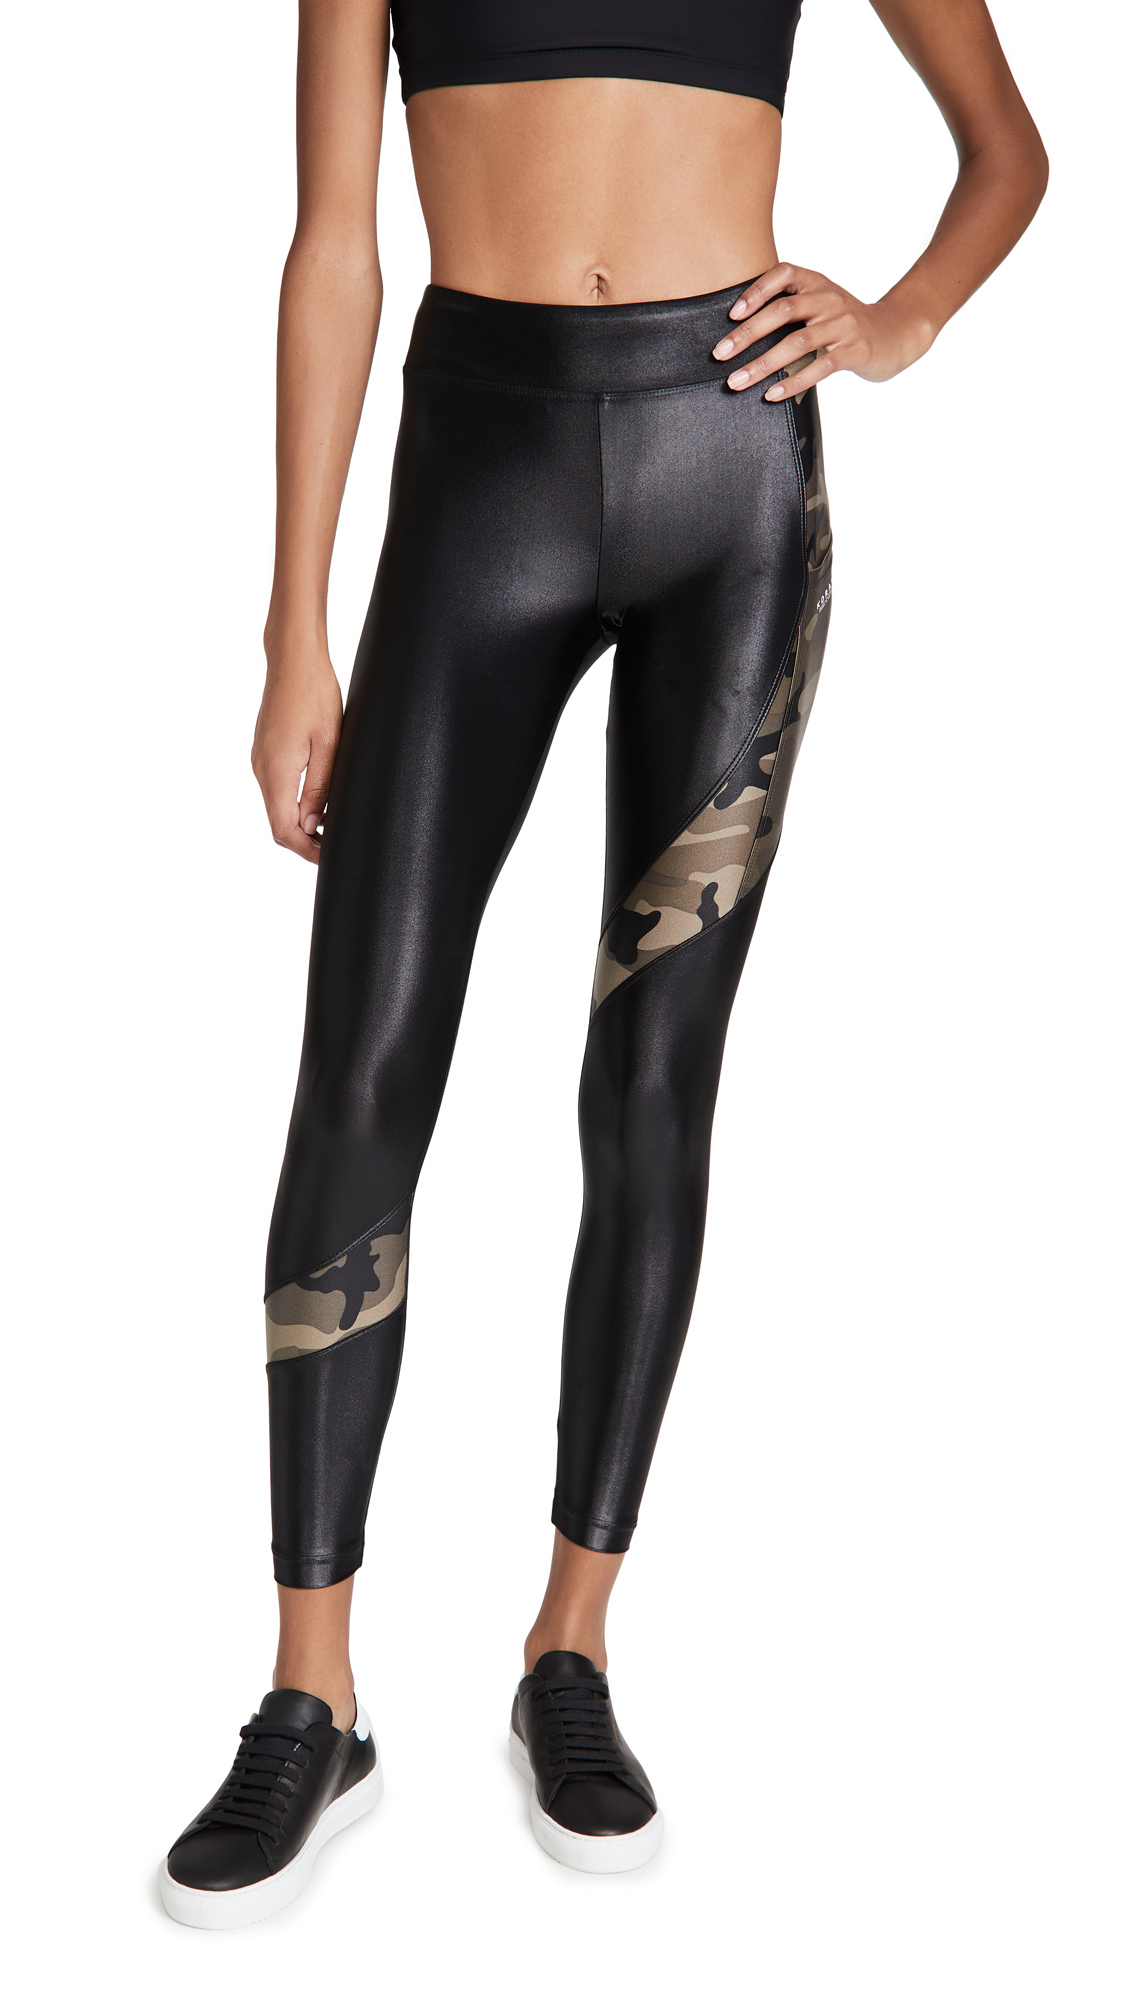 KORAL ACTIVEWEAR Pista High Rise Leggings